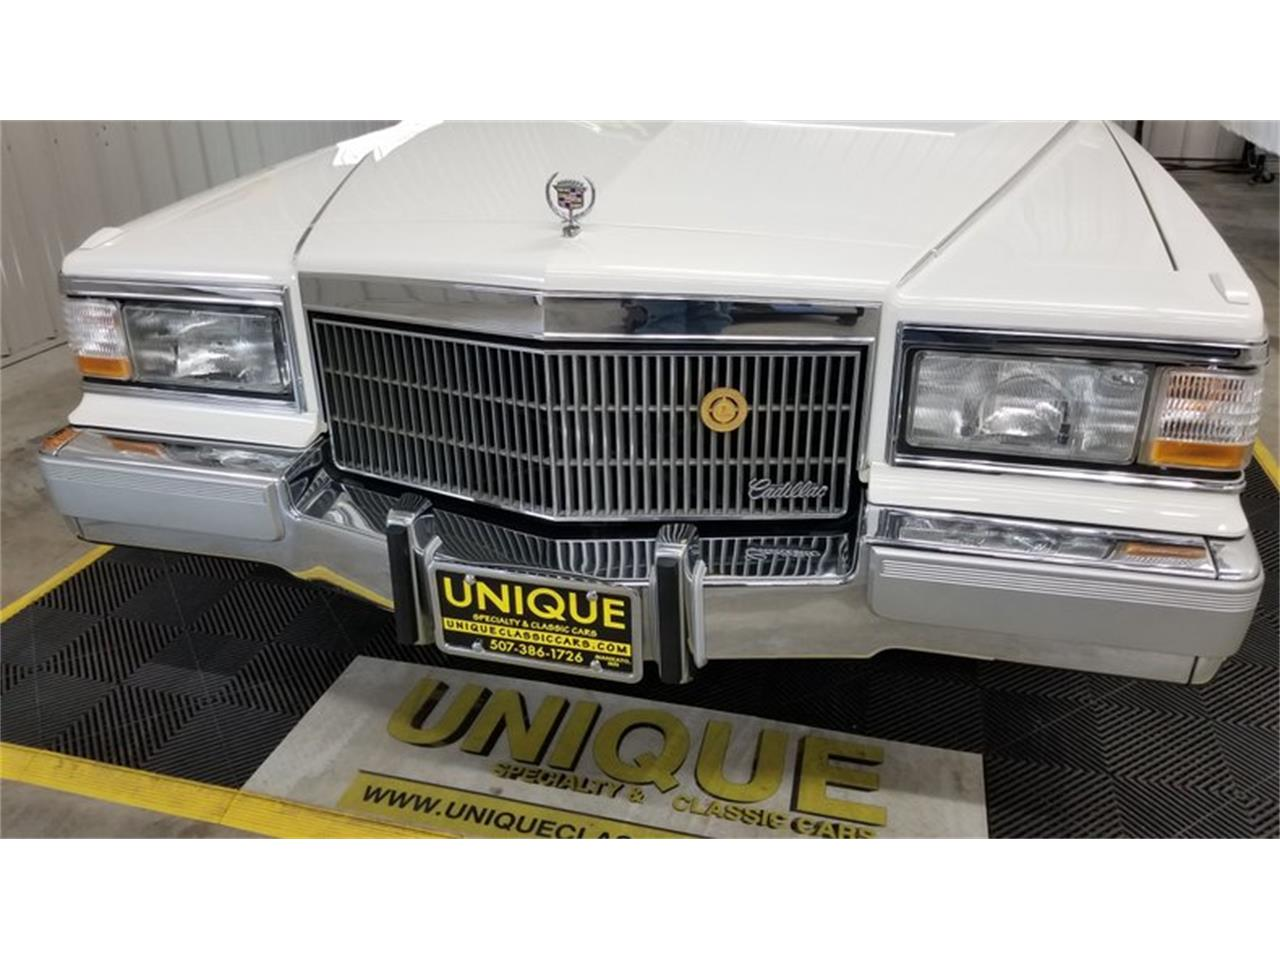 1991 Cadillac Brougham for sale in Mankato, MN – photo 9